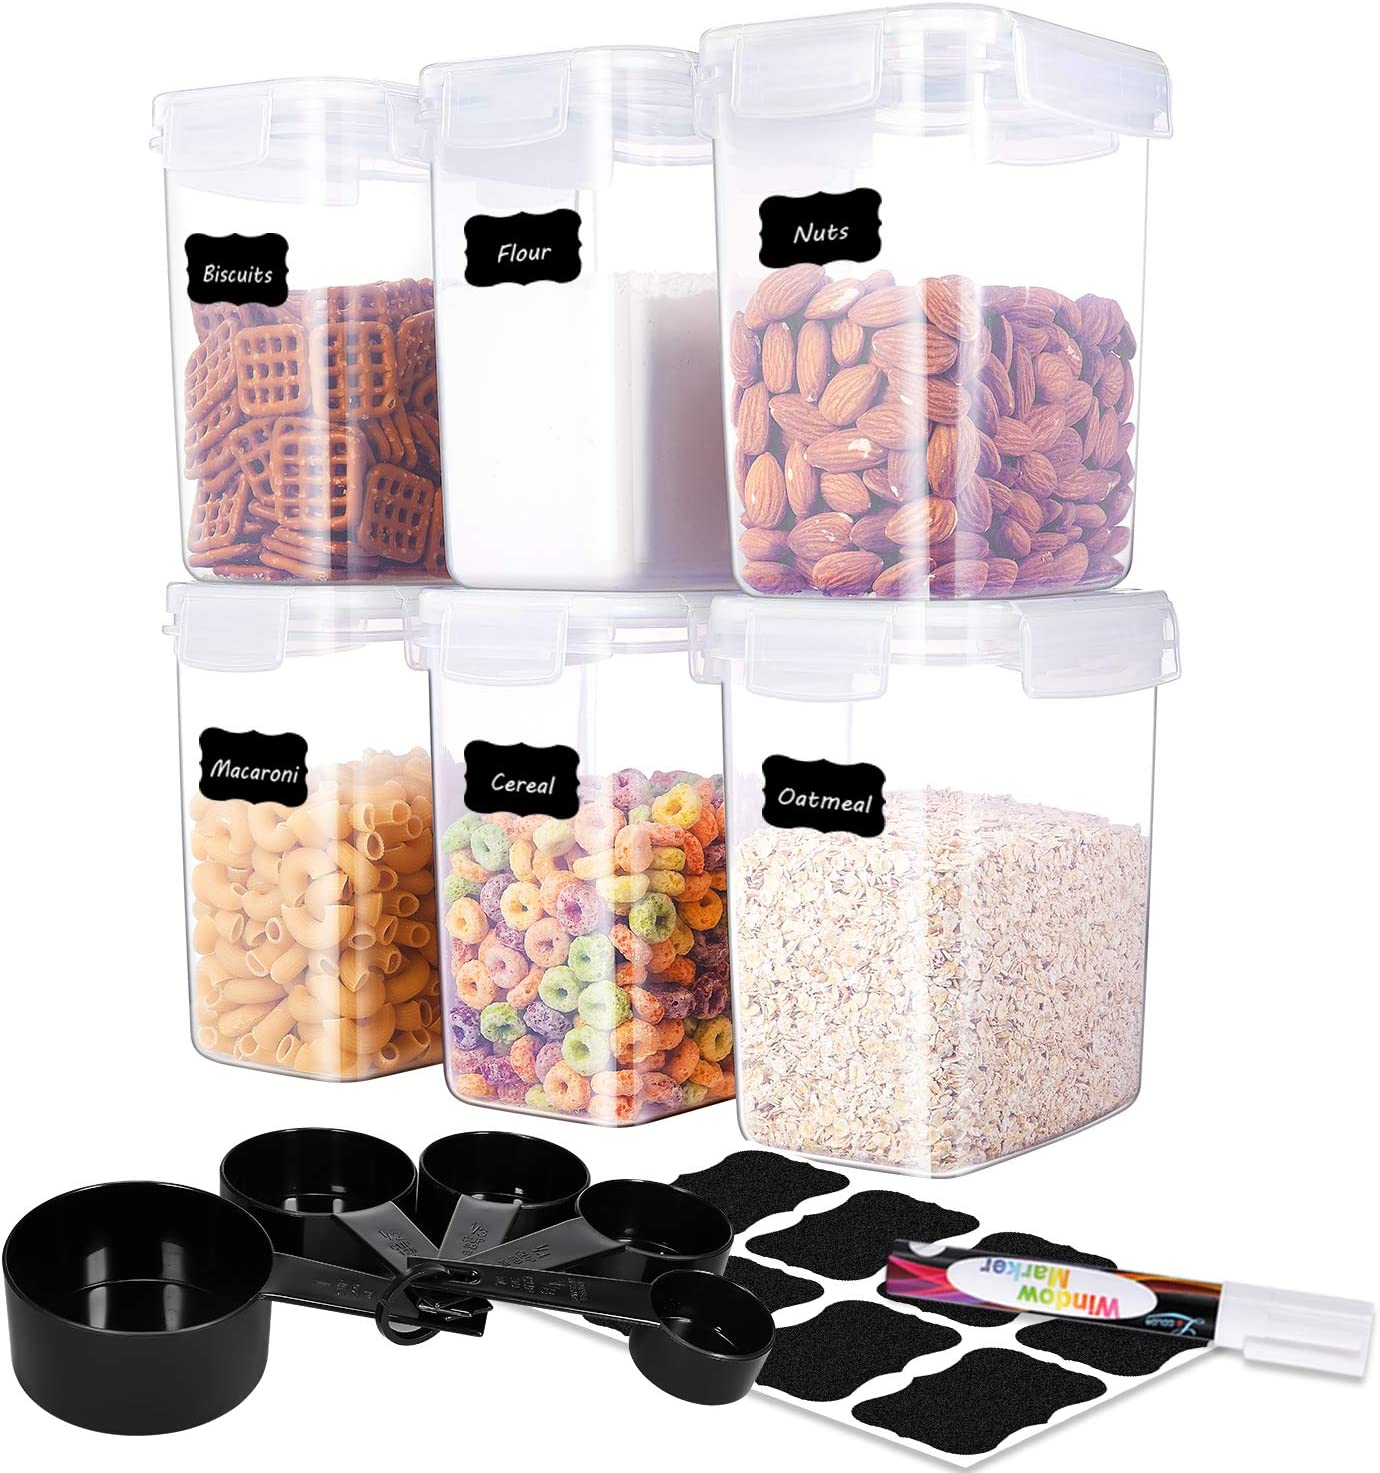 ME.FAN Medium Food Storage Containers [Set of 6] Airtight Storage Keeper 1.6L(54.1oz) with 5 Set Measuring Cups 24 Chalkboard labels & Pen Ideal for Sugar, Flour, Baking Supplies (White)